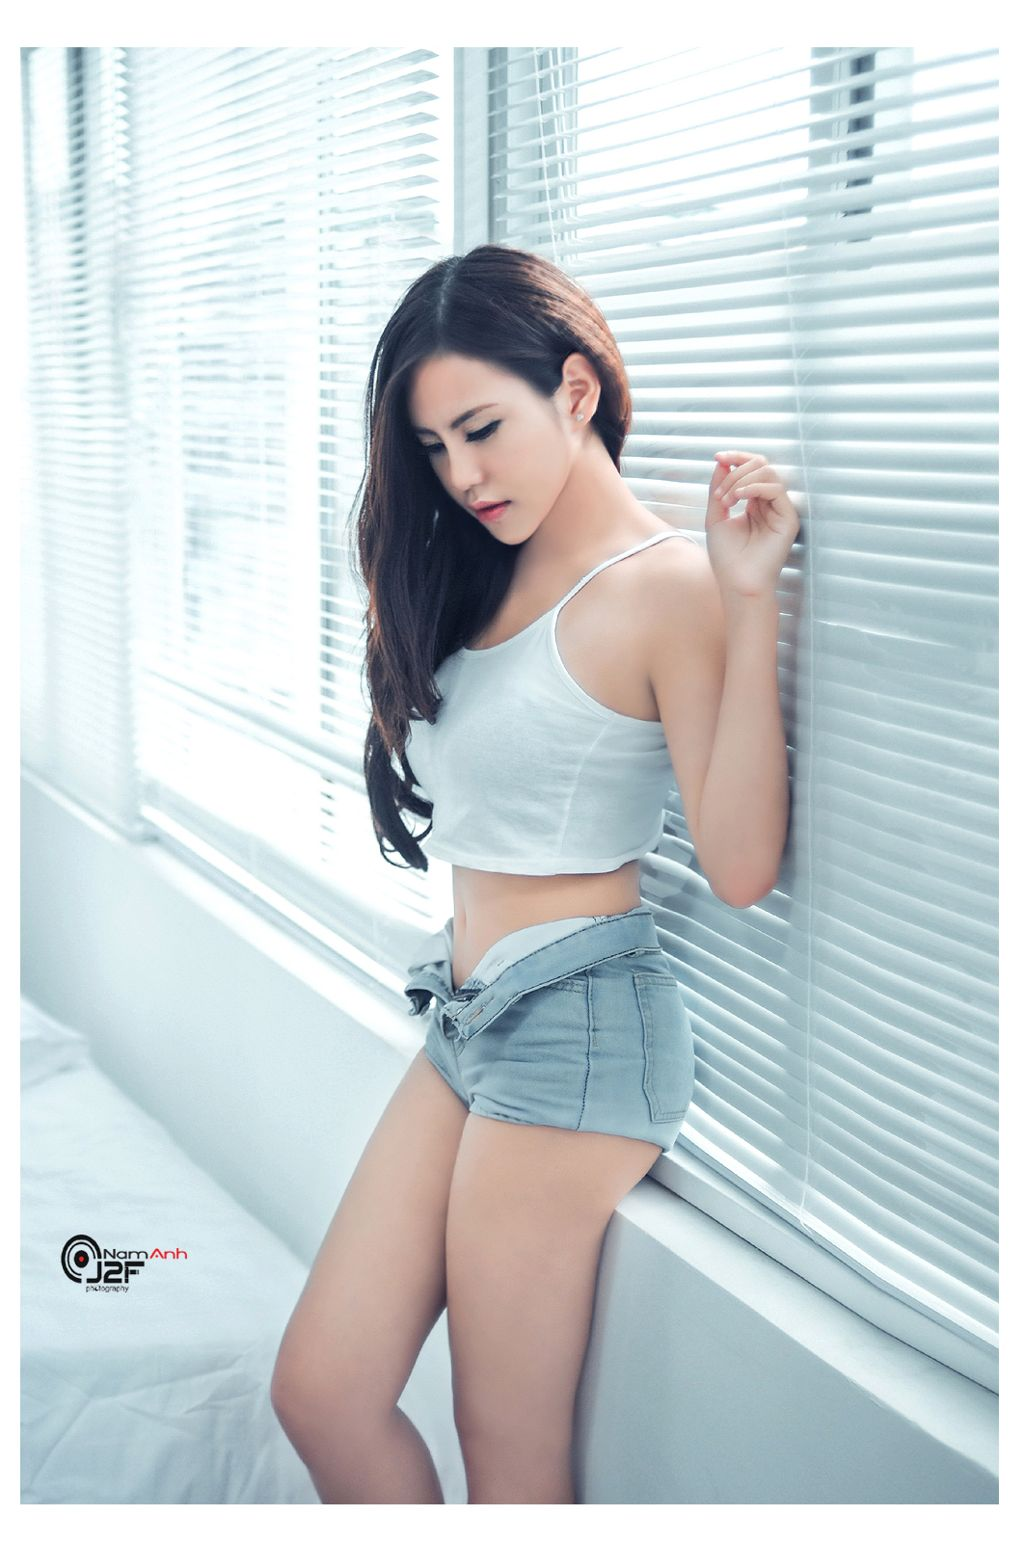 Image-Vietnamese-Model-Sexy-Beauty-of-Beautiful-Girls-Taken-by-NamAnh-Photography-3-TruePic.net- Picture-10